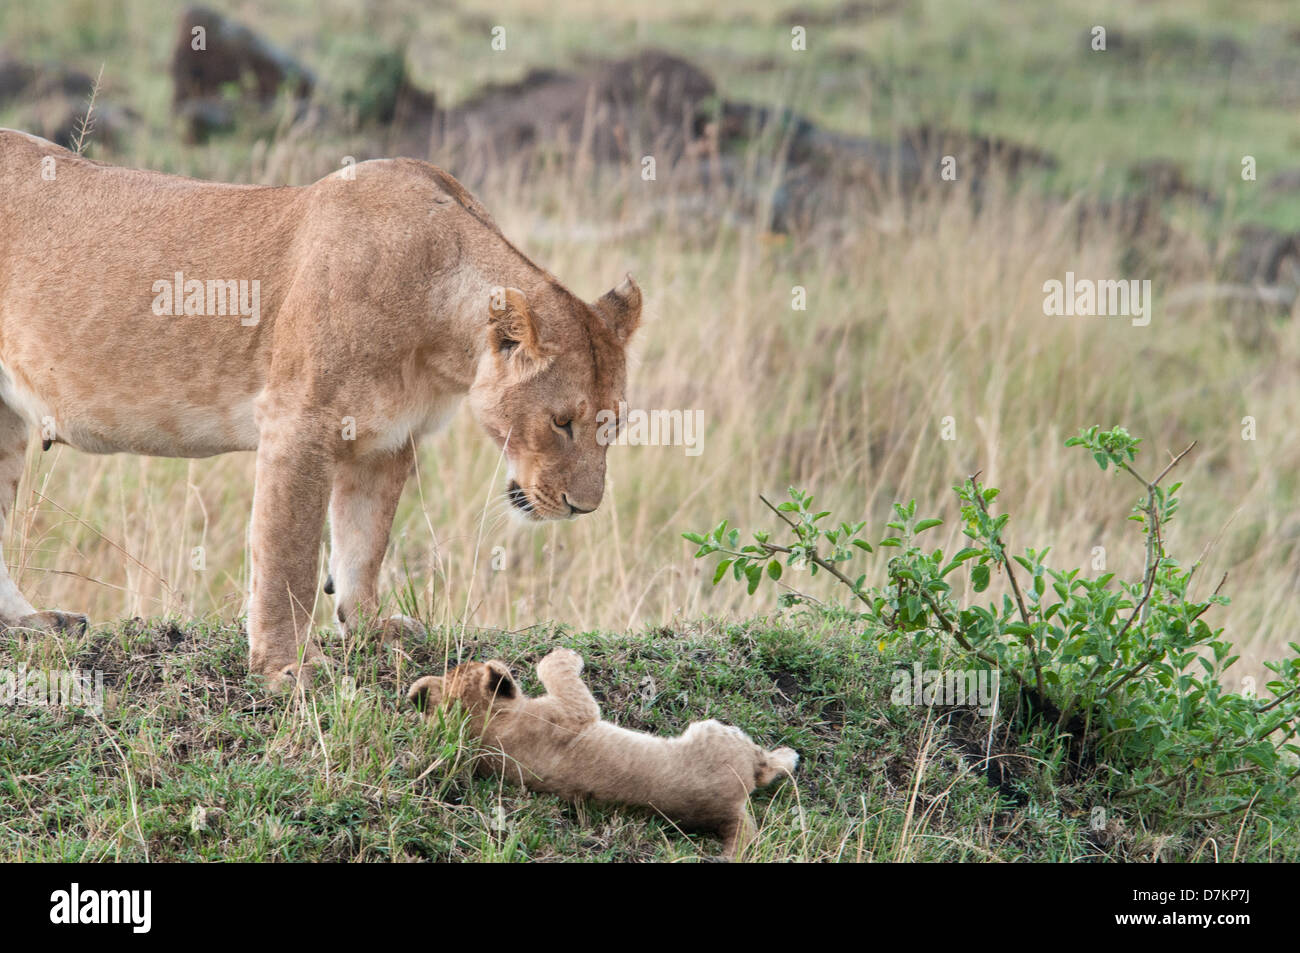 Lioness, Panthera leo, looks with dismay at her falling cub, Masai Mara National Reserve, Kenya, East Africa - Stock Image